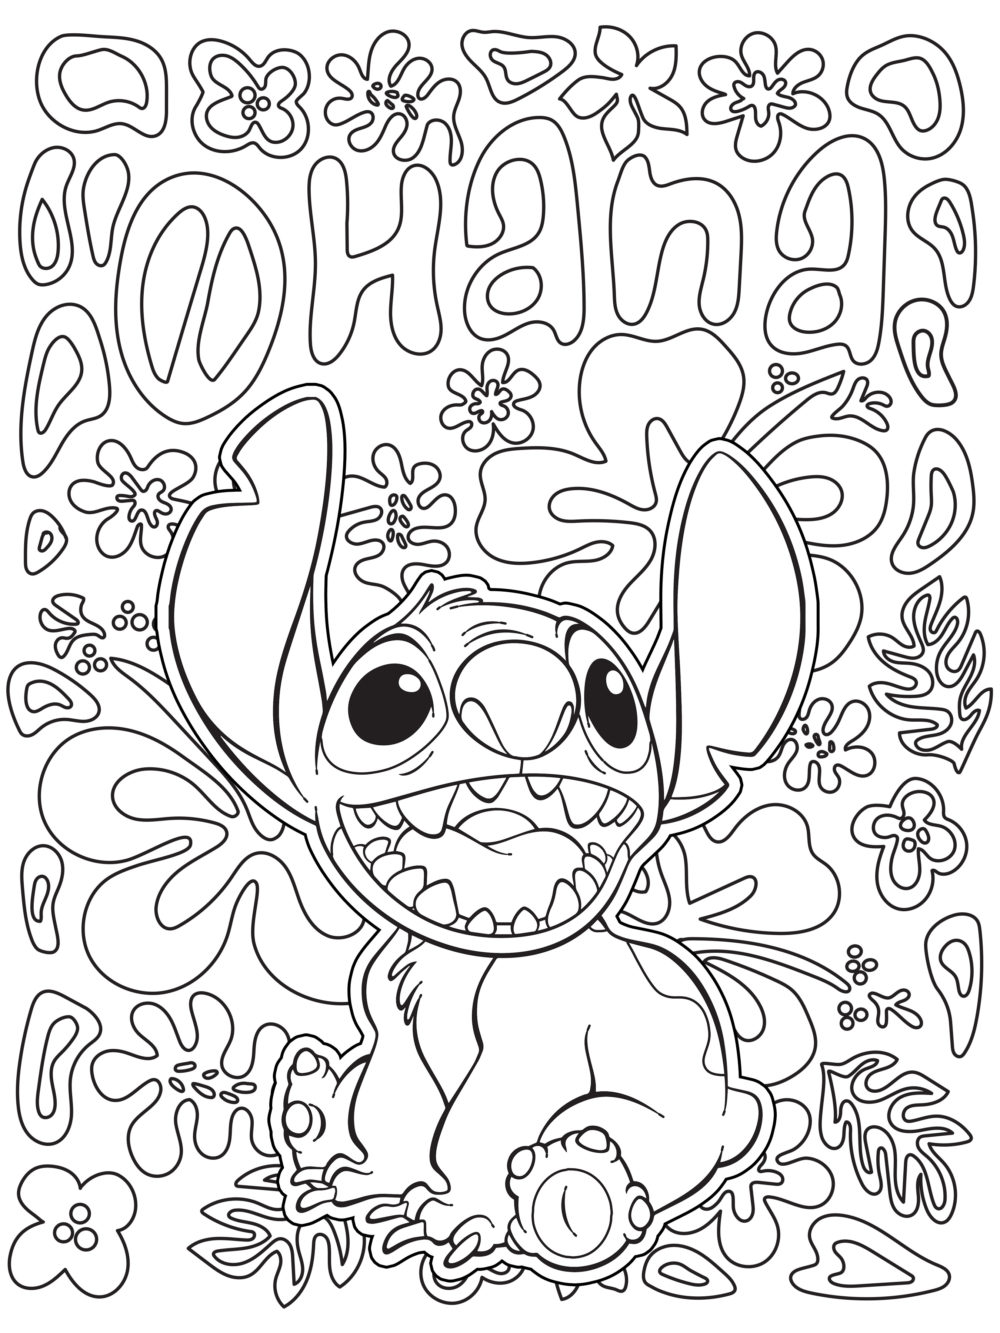 Celebrate National Coloring Book Day With Disney Style Coloringpagestoprint Stitch In 2020 Stitch Coloring Pages Free Disney Coloring Pages Disney Coloring Sheets